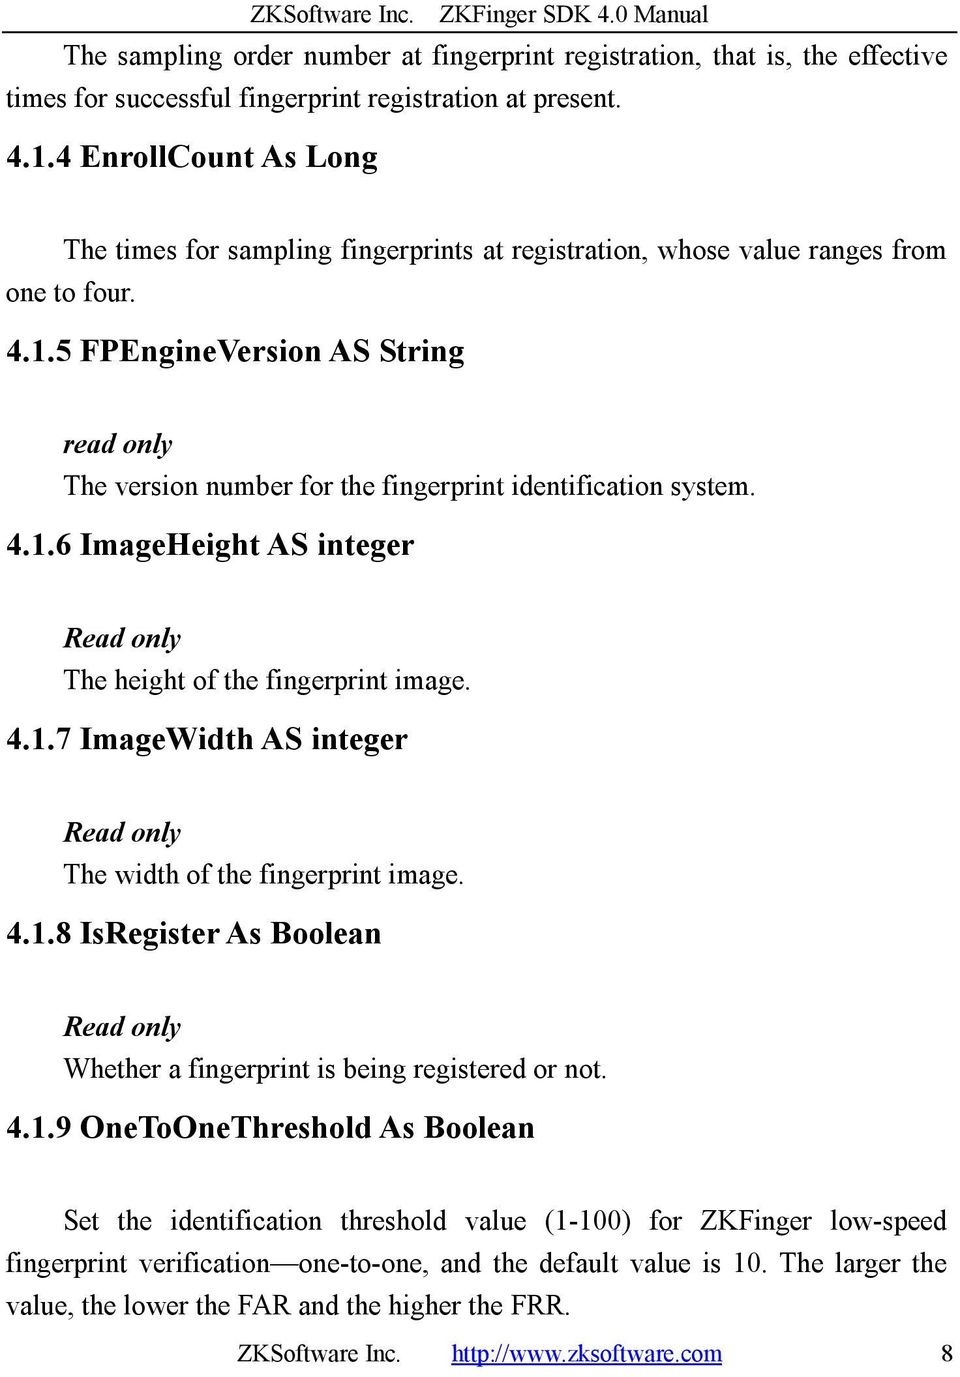 ZKFinger SDK 4 0 Manual - PDF